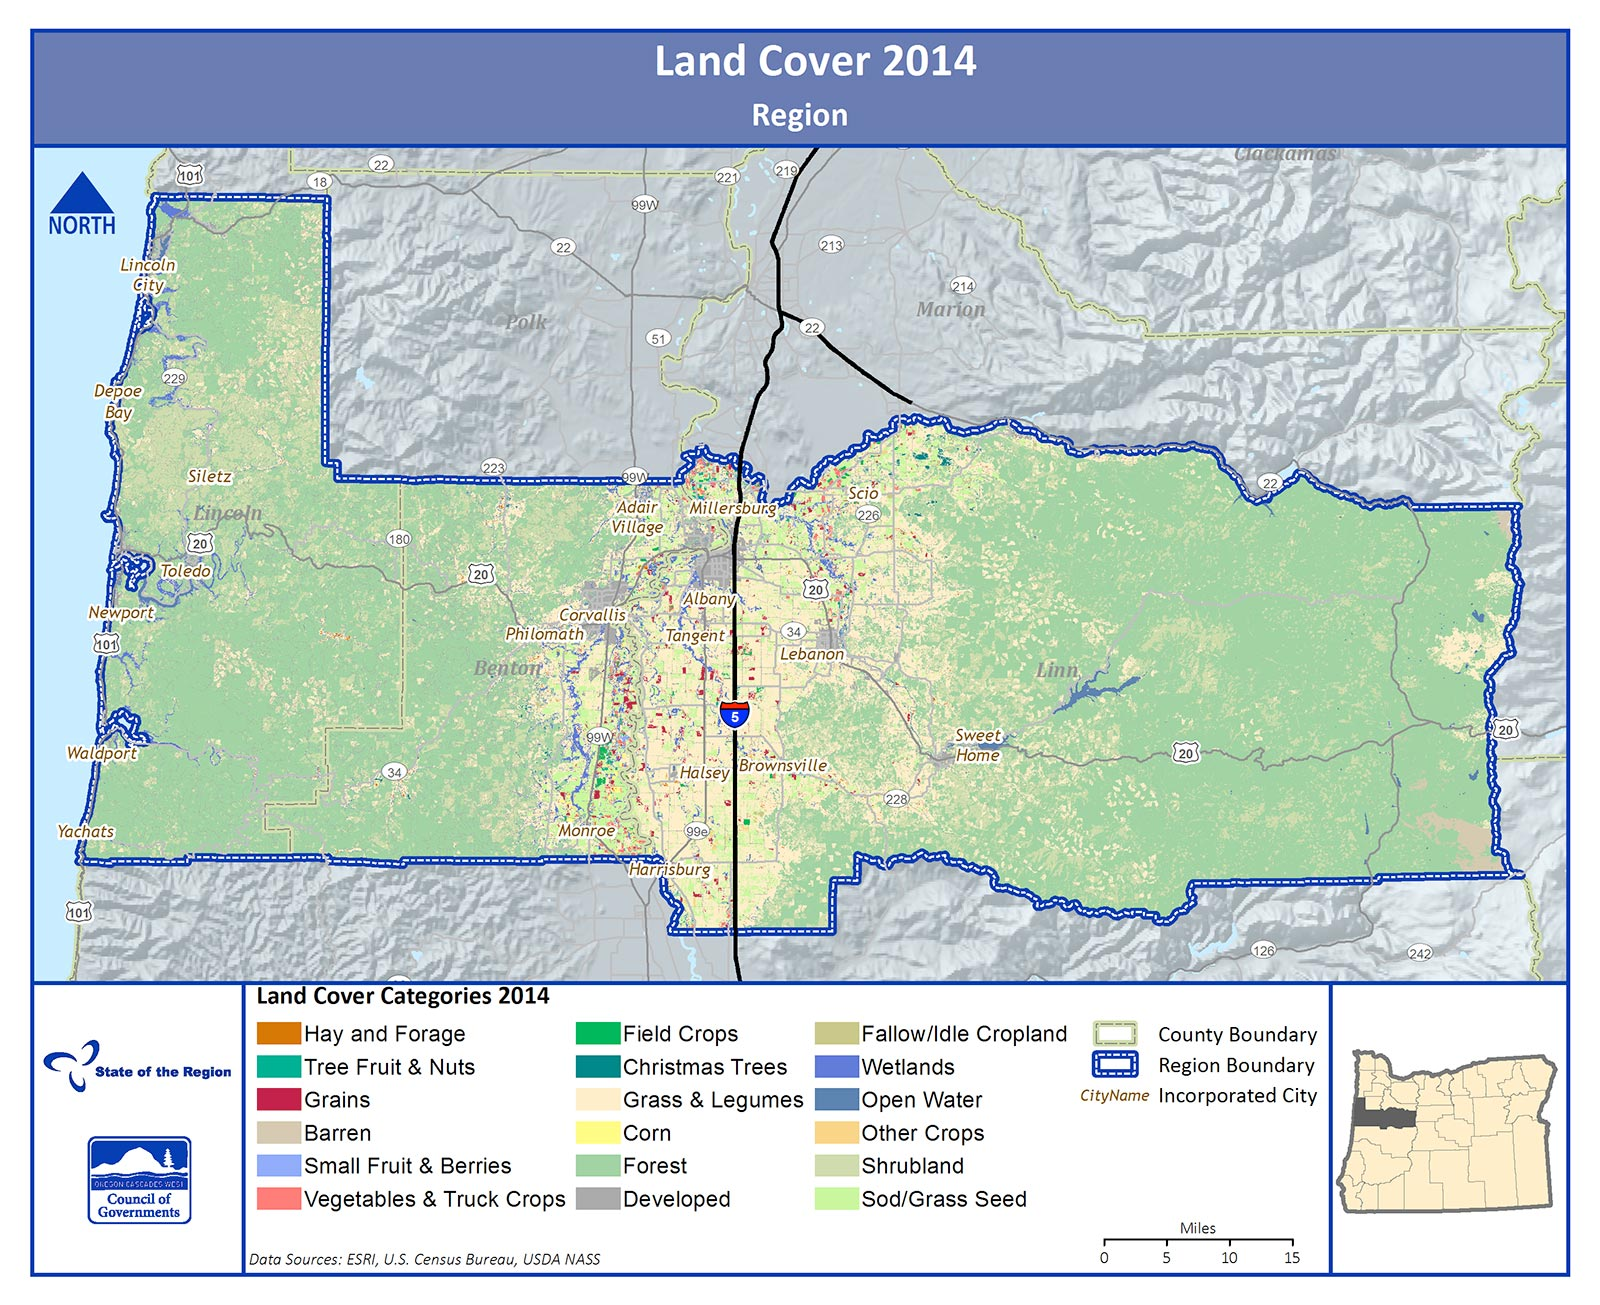 Map of Land Cover in the Region